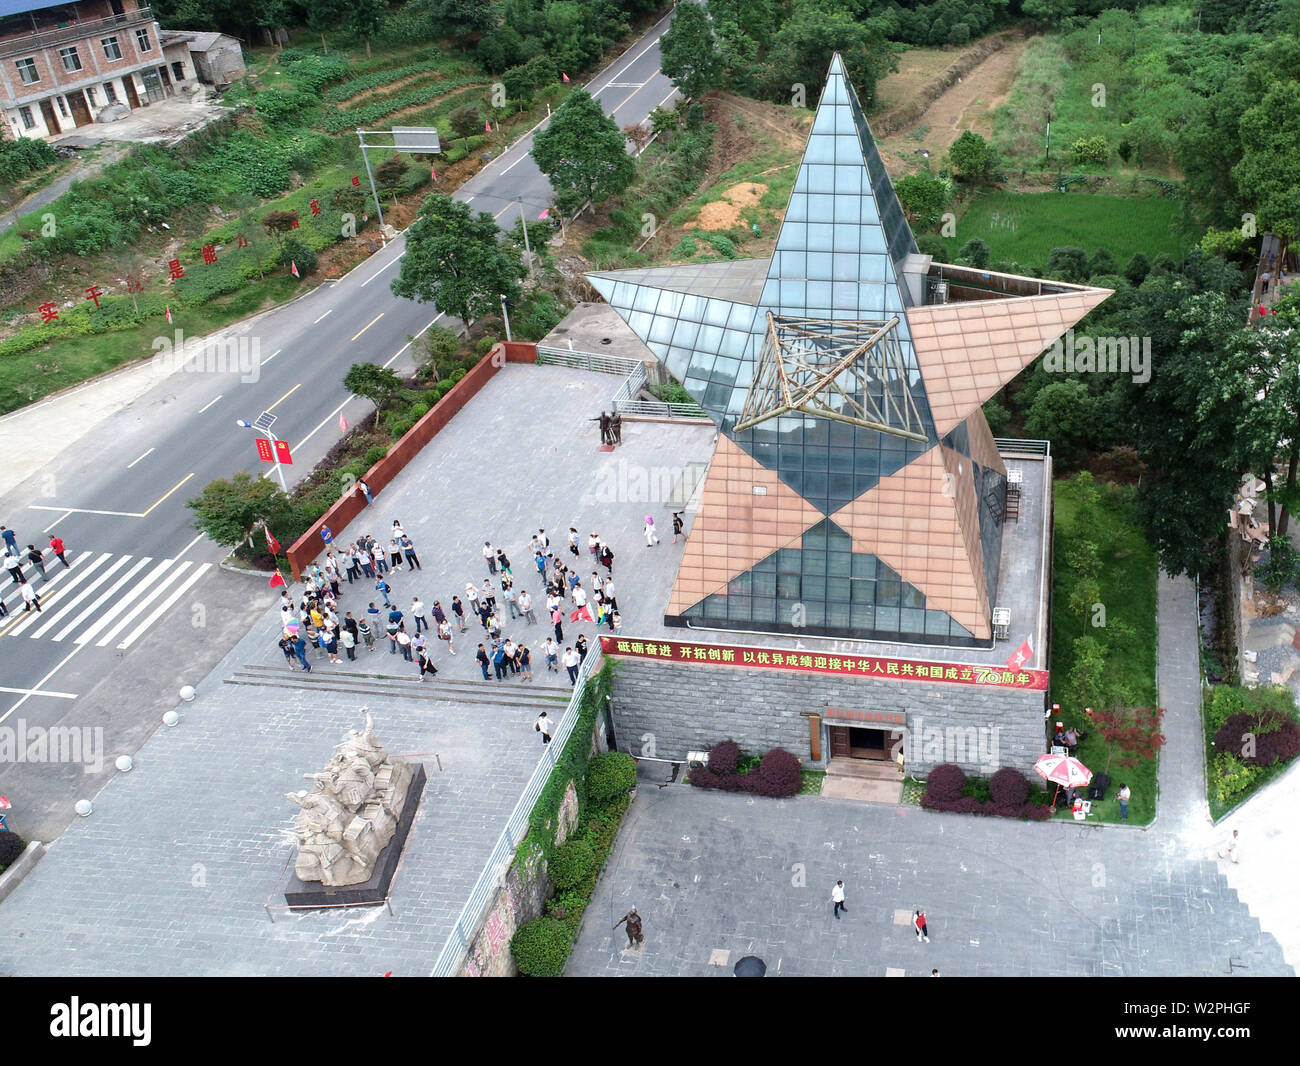 (190710) -- XING'AN, July 10, 2019 (Xinhua) -- Aerial photo taken on June 28, 2019 shows the memorial hall that commemorates the battle of Xinxu in Guanyang County, south China's Guangxi Zhuang Autonomous Region. The Battle of Xinxu was one of the three major block battles fought in Guangxi, which had brought time for the Red Army to cross the Xiangjiang River. Memorial halls and martyrs' cemeteries are springing up in many revolutionary places over the past few years, especially those along the Long March route. Visitors from all over China come to these memorials, reconnecting with histo - Stock Image